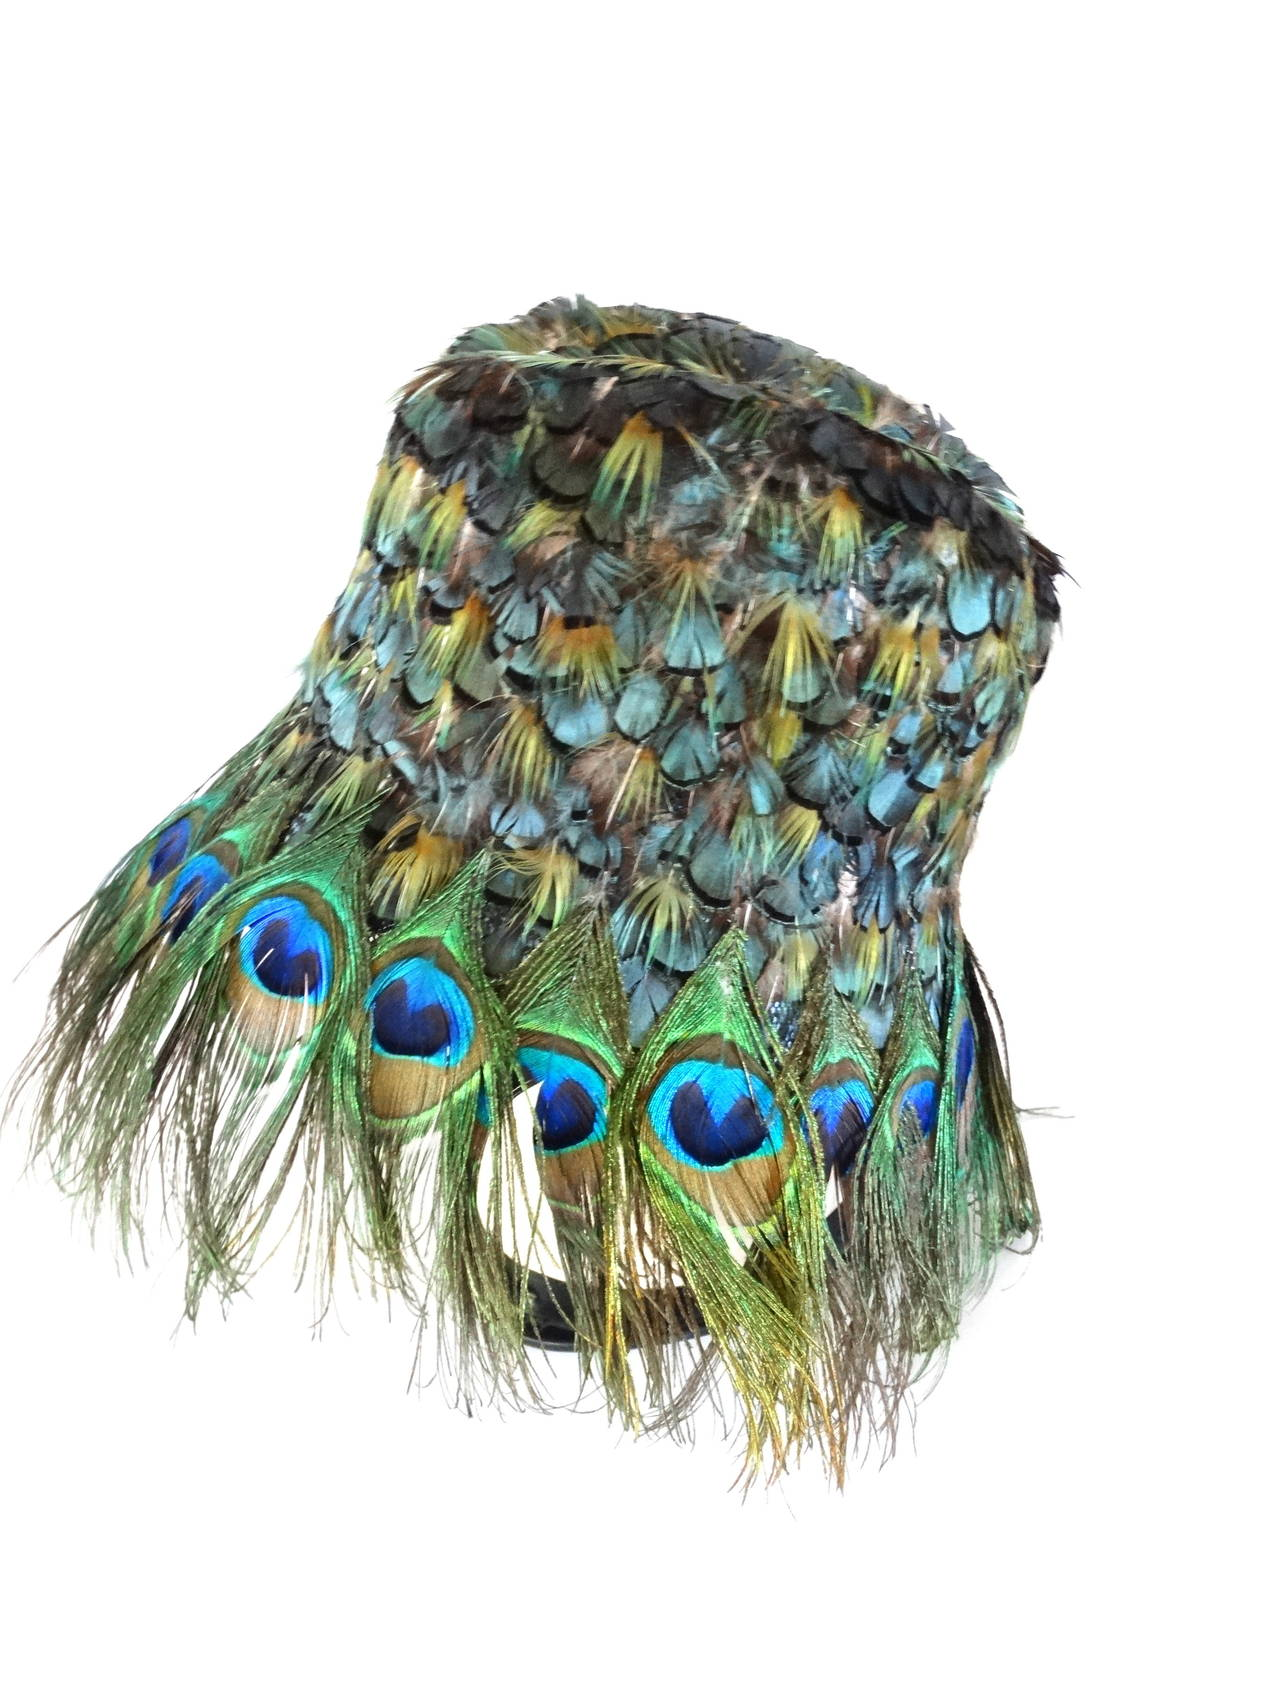 2005 prada s  s runway peacock hat at 1stdibs